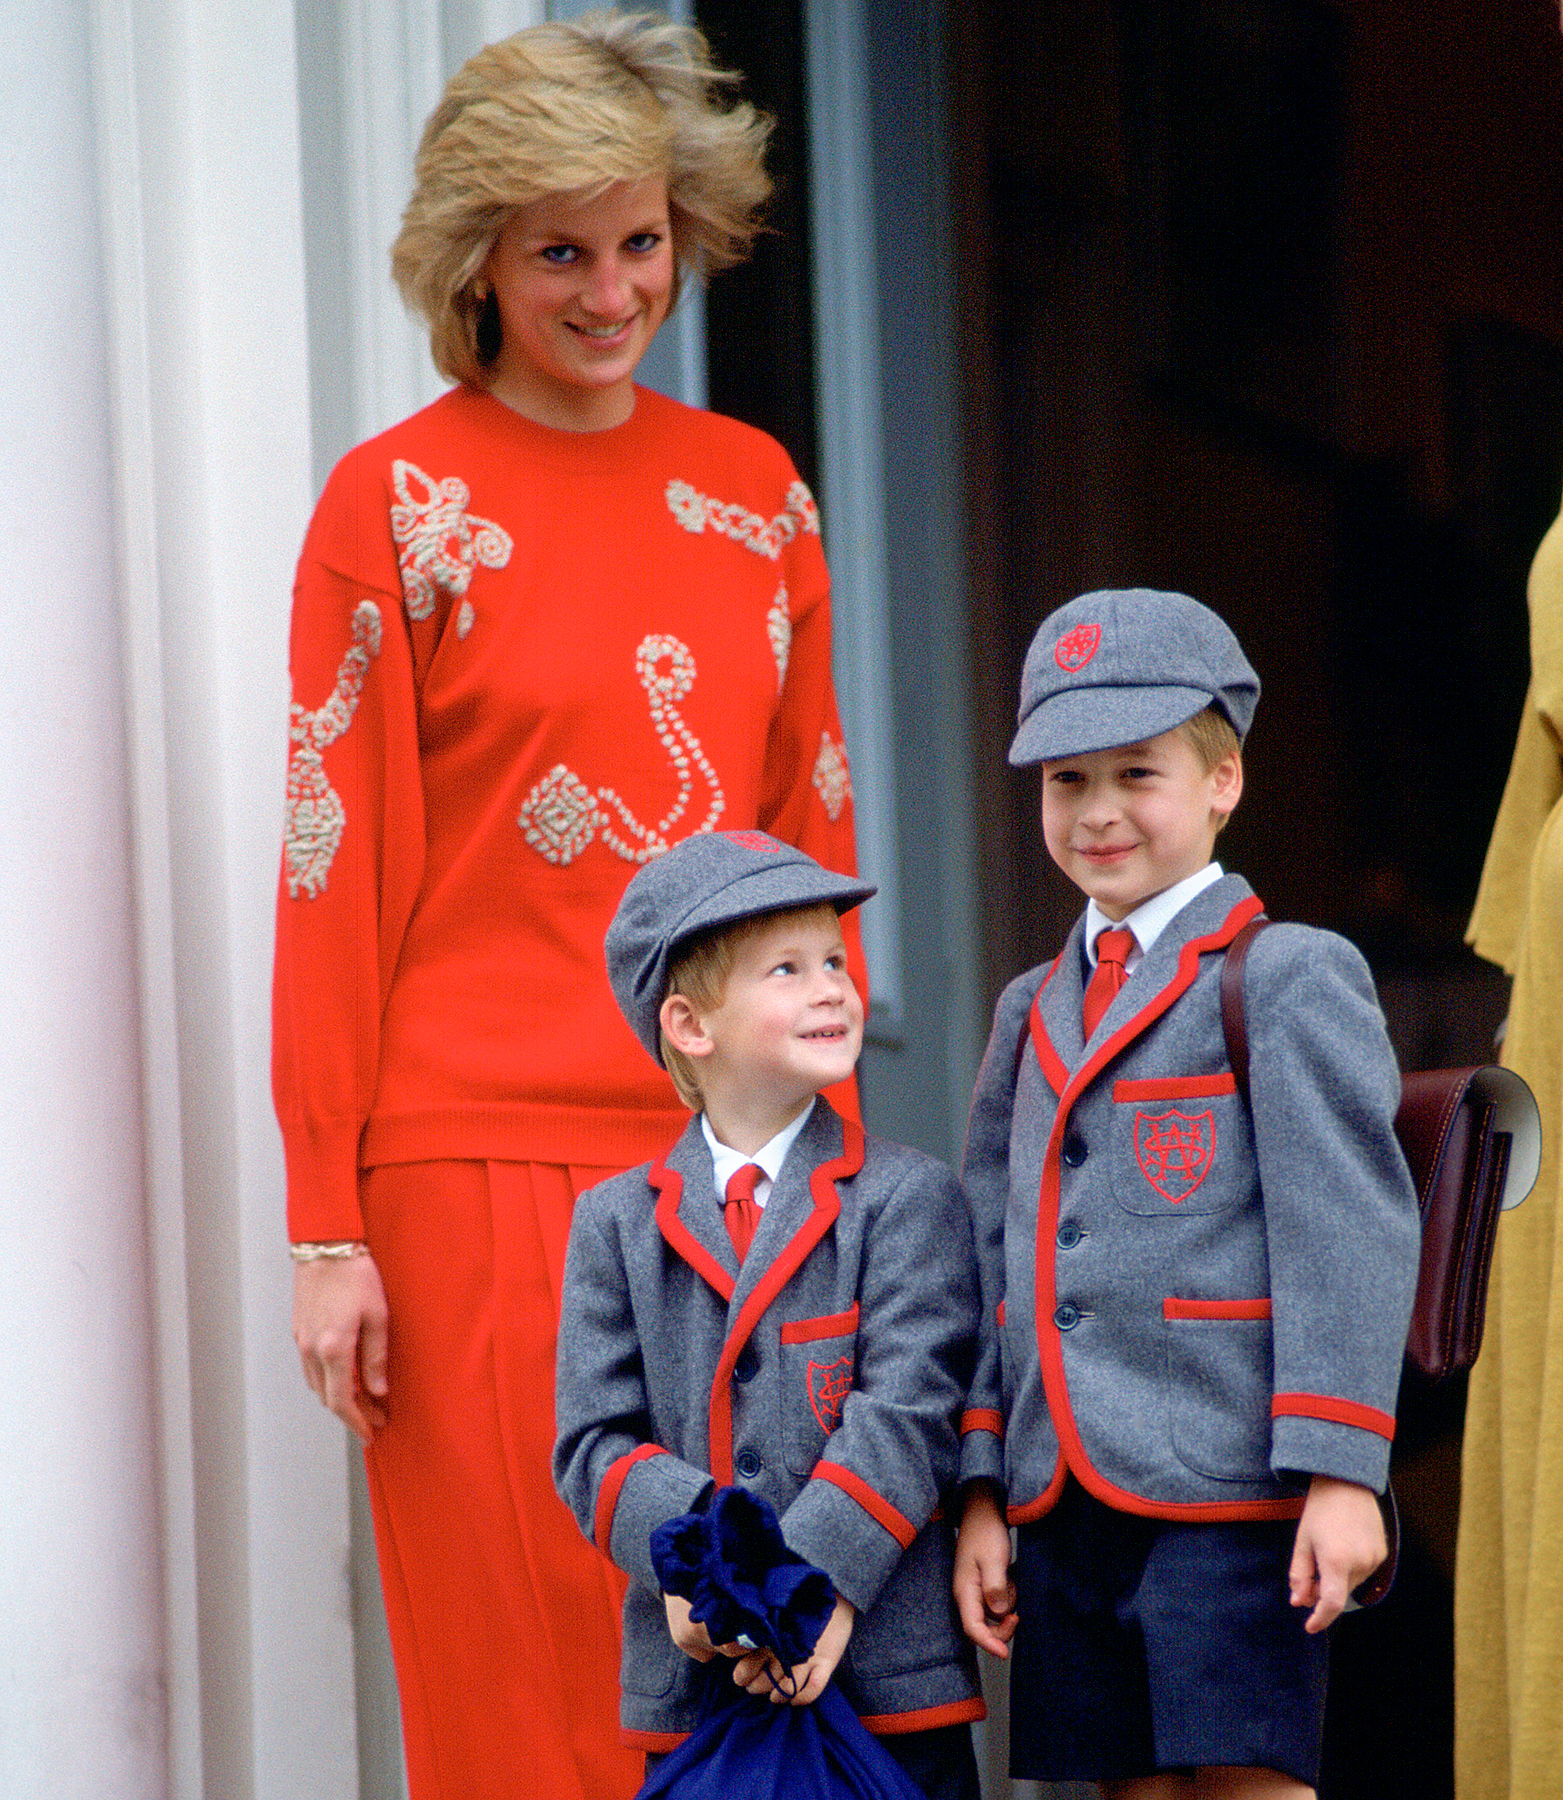 Princess Diana, Prince Harry and Prince William in 1989.